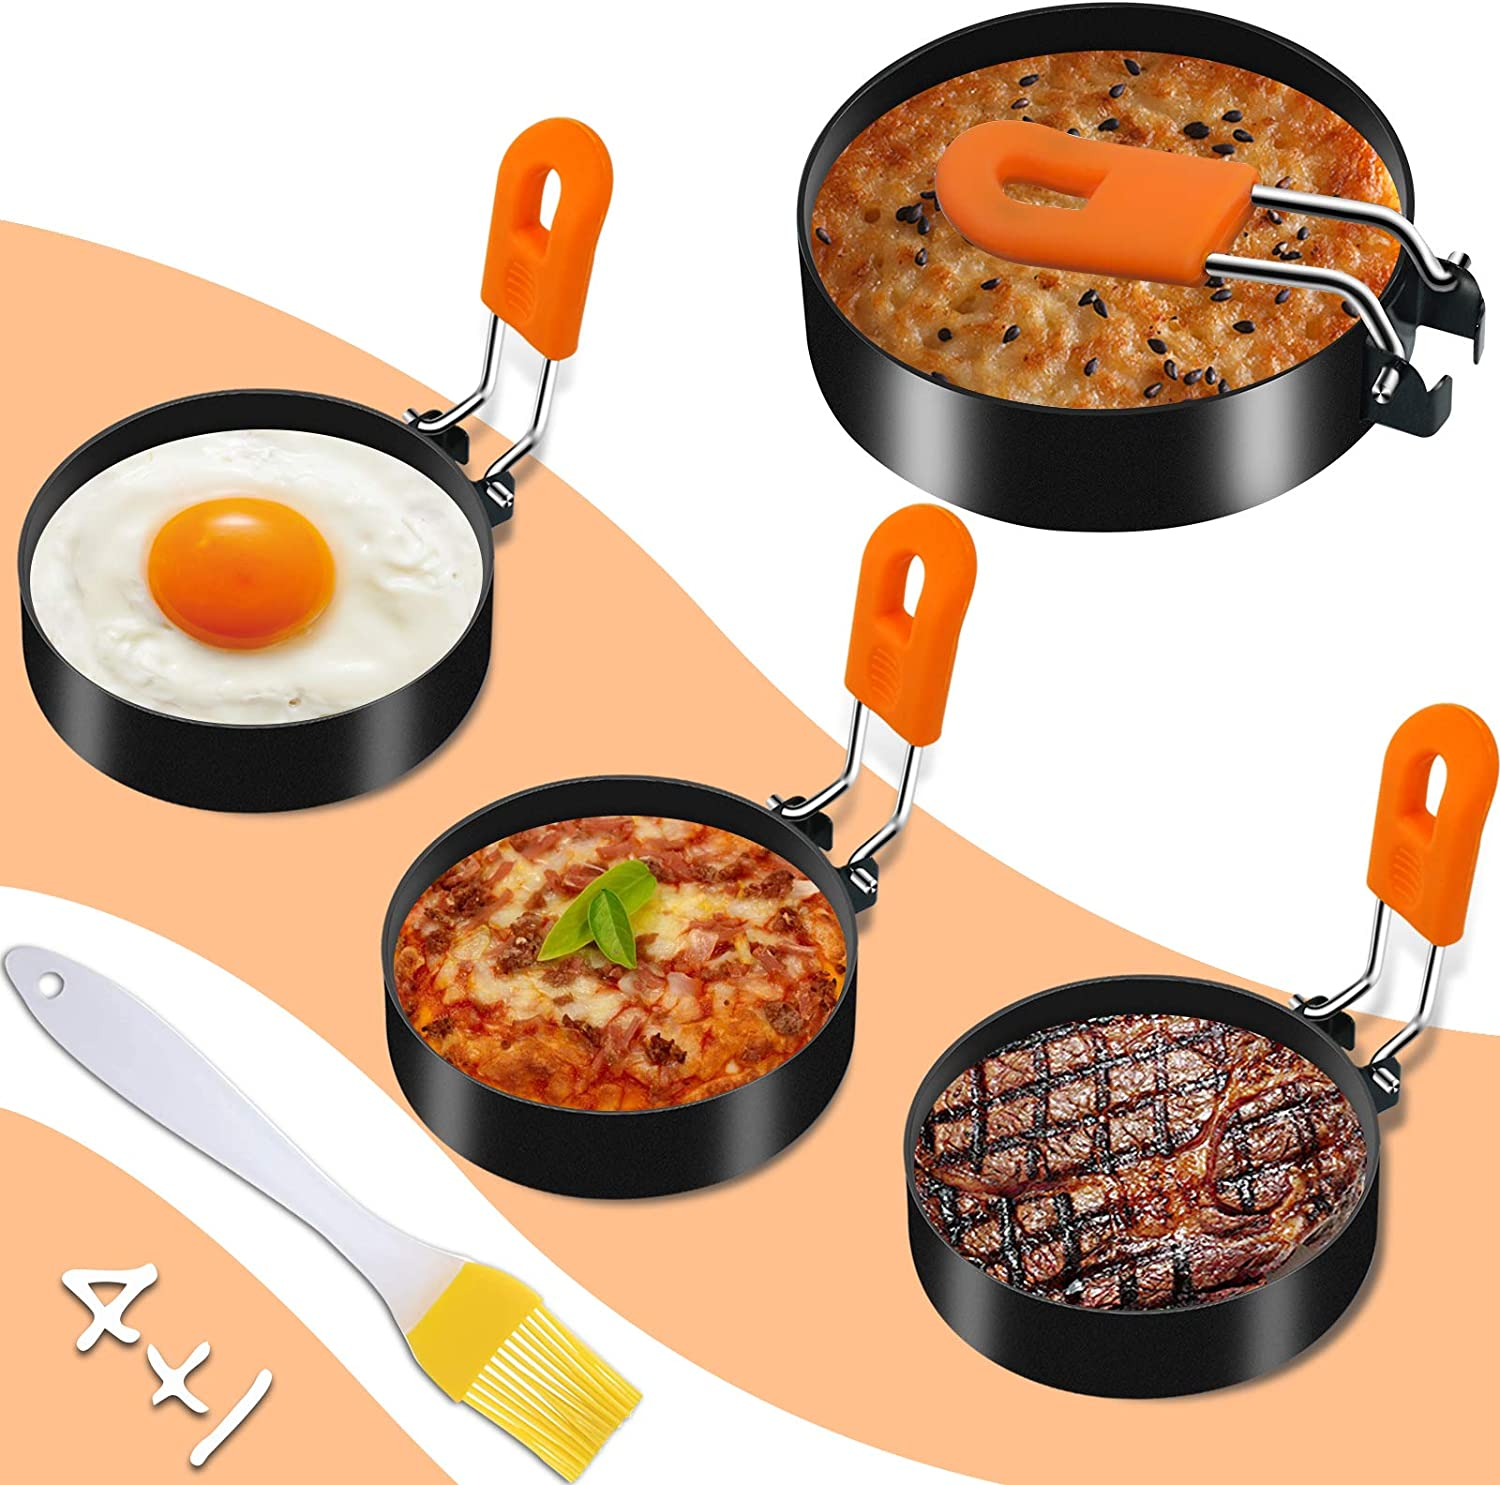 Egg Rings for Frying Eggs, Aneder 4 Pack Egg Cooker Stainless Steel Egg Mold with Silicon Brush Round Crumpet Ring Mold Shaper for Breakfast, Mini Pancakes and Fried Eggs